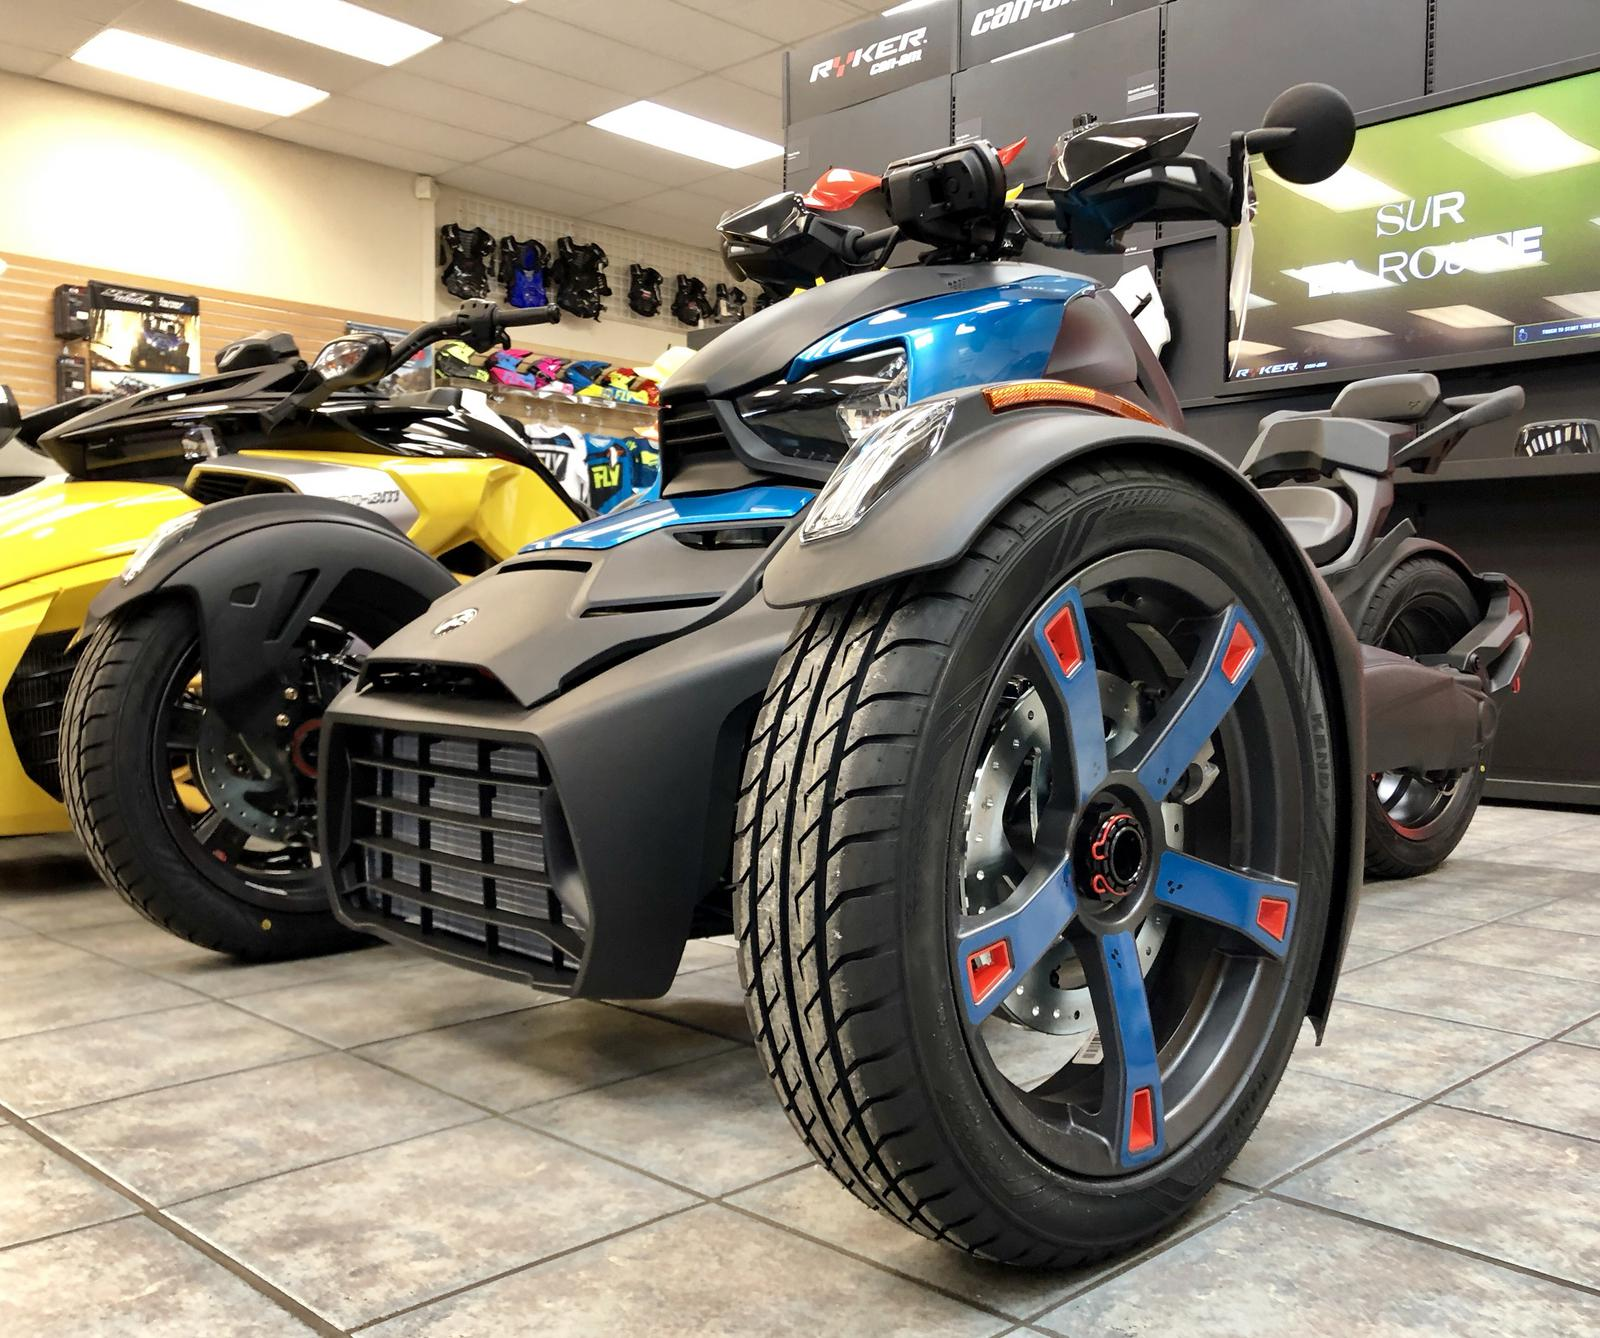 New Inventory from Can-Am Reno's Powersports KC Kansas City